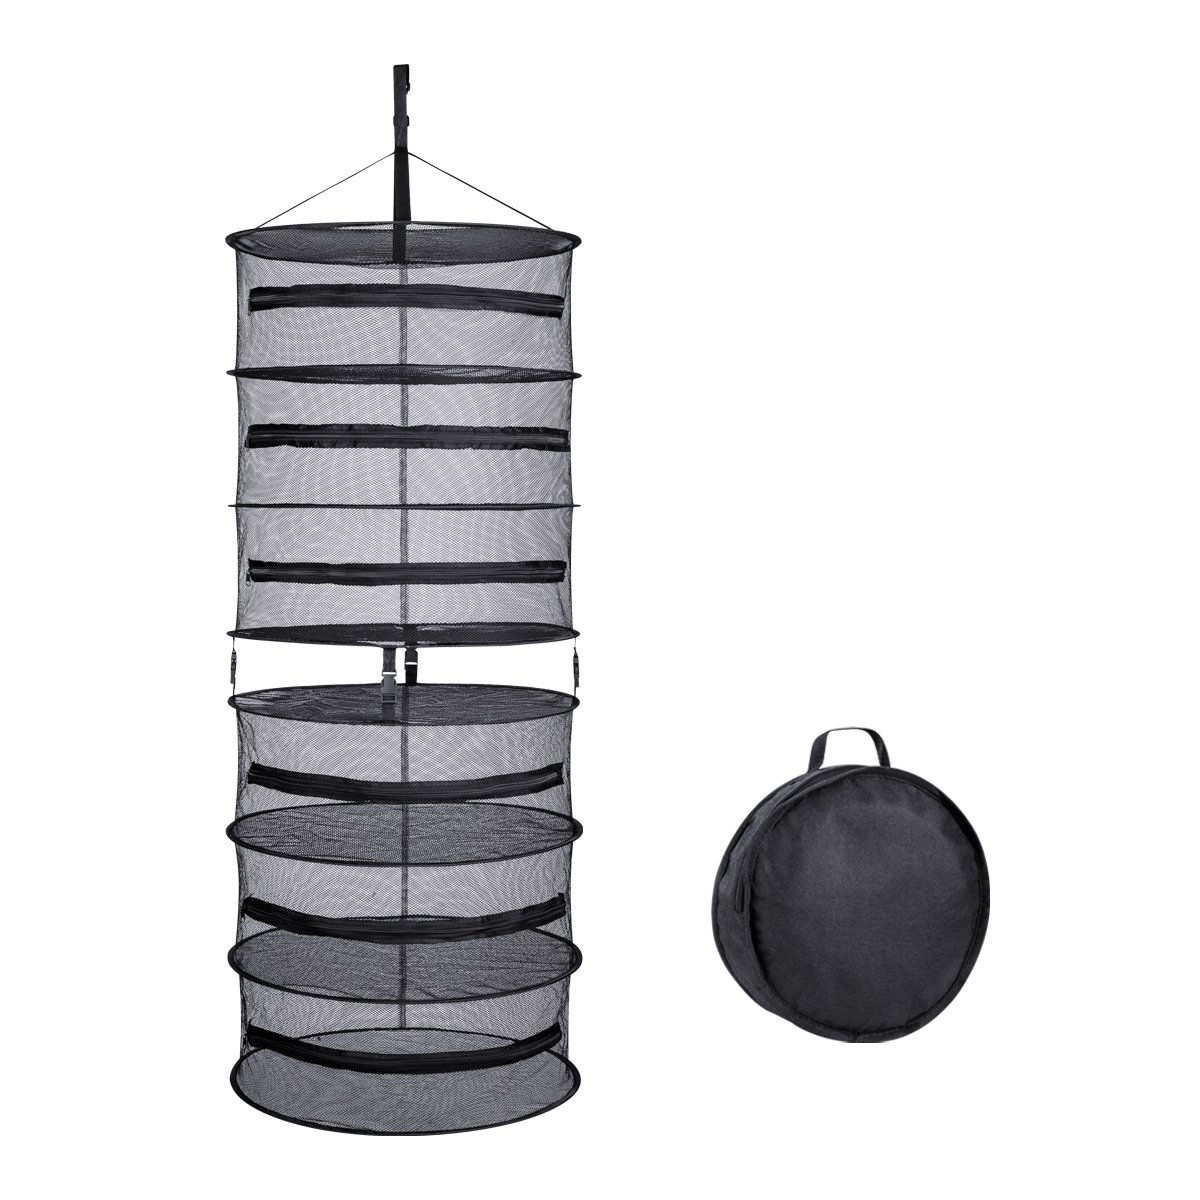 A1KINGDOM 2-ft 6 Layer Upgrade Collapsible Black Mesh Hanging Herb Drying Rack Dry Net for Hydroponic Plant